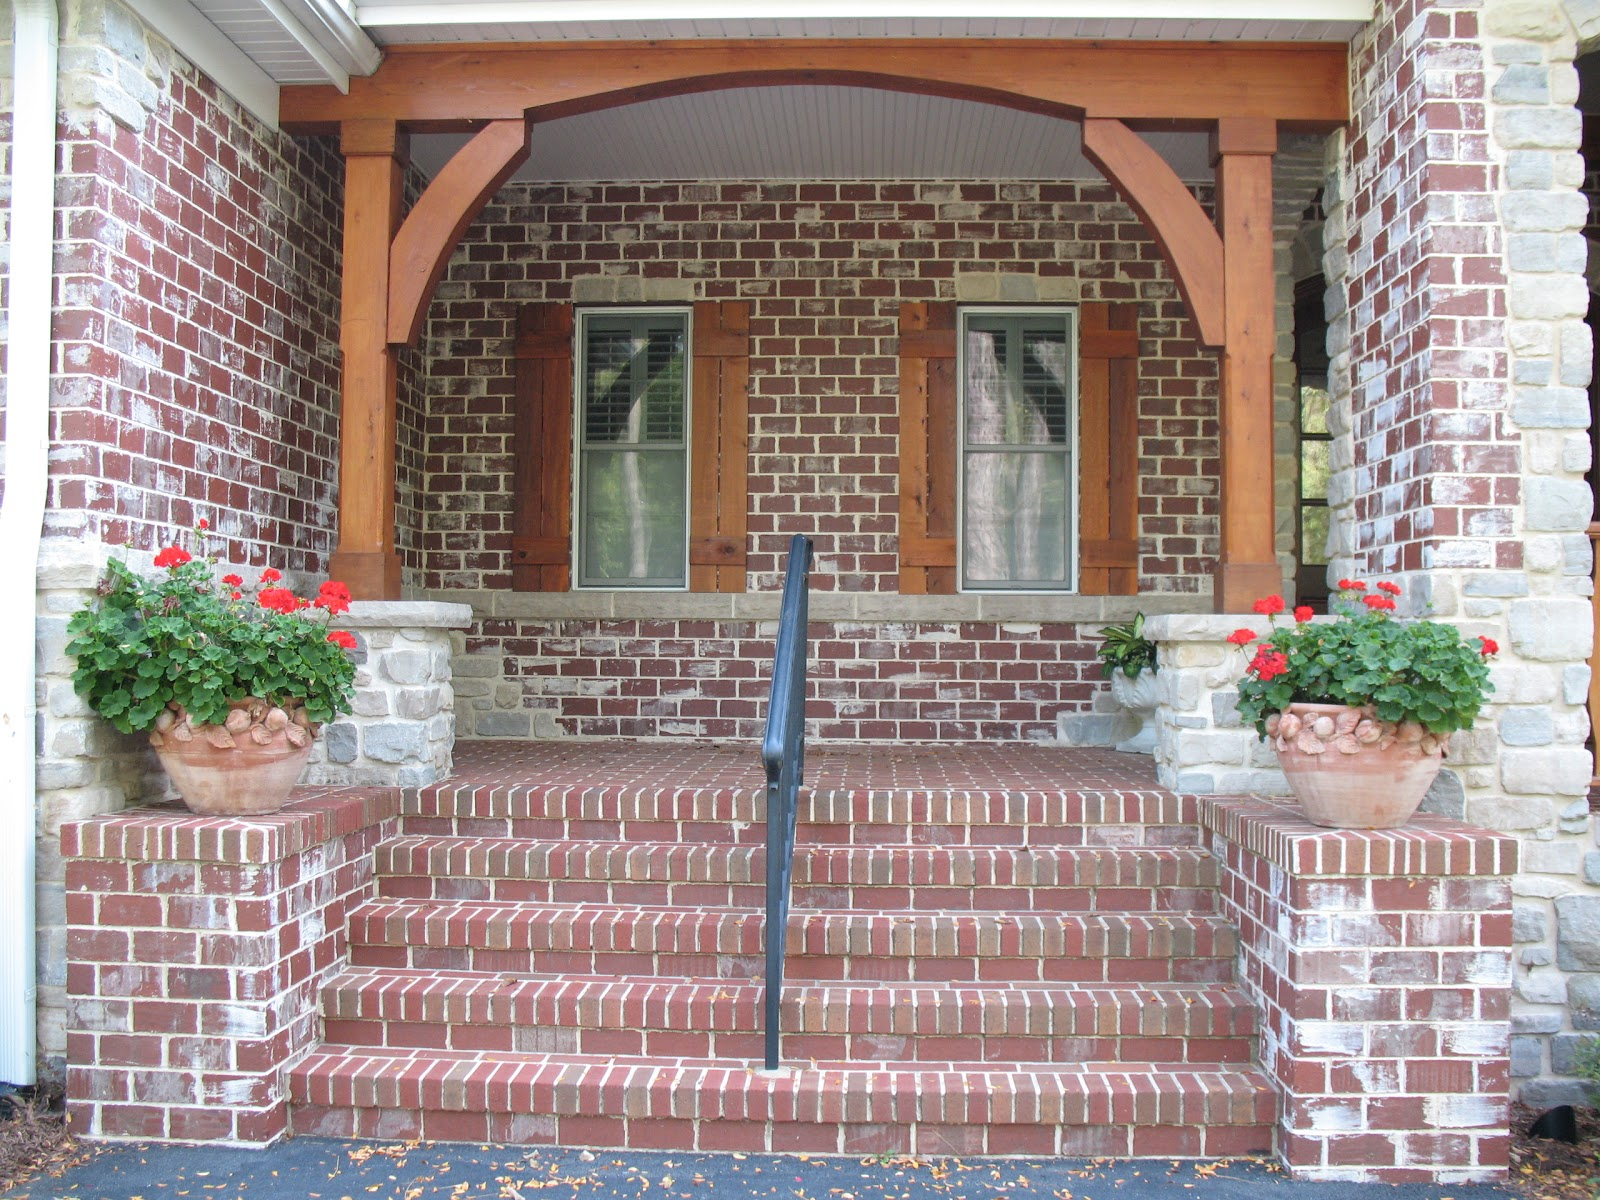 The 15 best brick front porches home building plans 5255 for Brick porch designs for houses